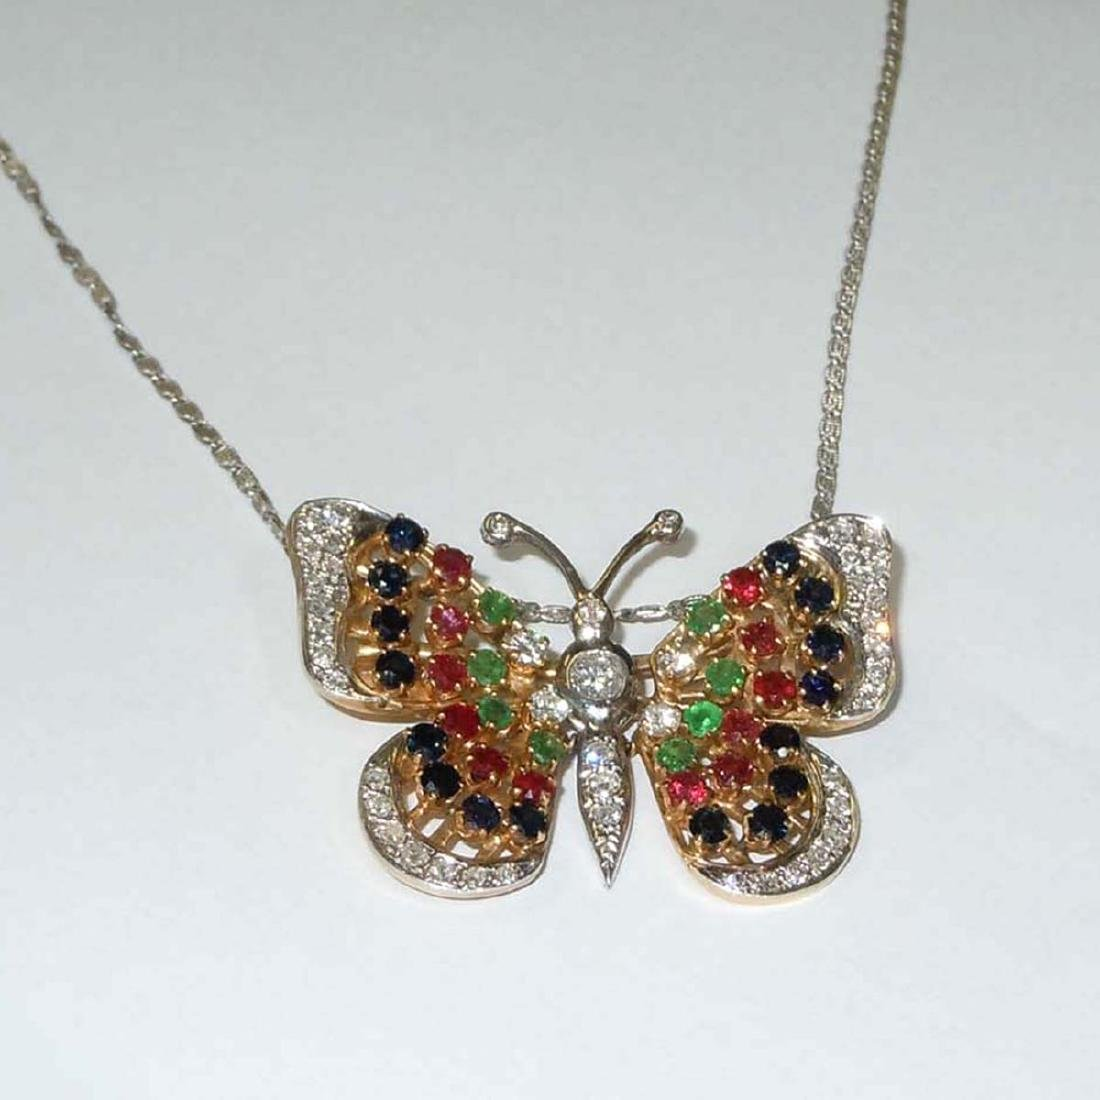 14KT DIAMOND RUBY EMERALD SAPPHIRE BUTTERFLY NECKLACE - 3